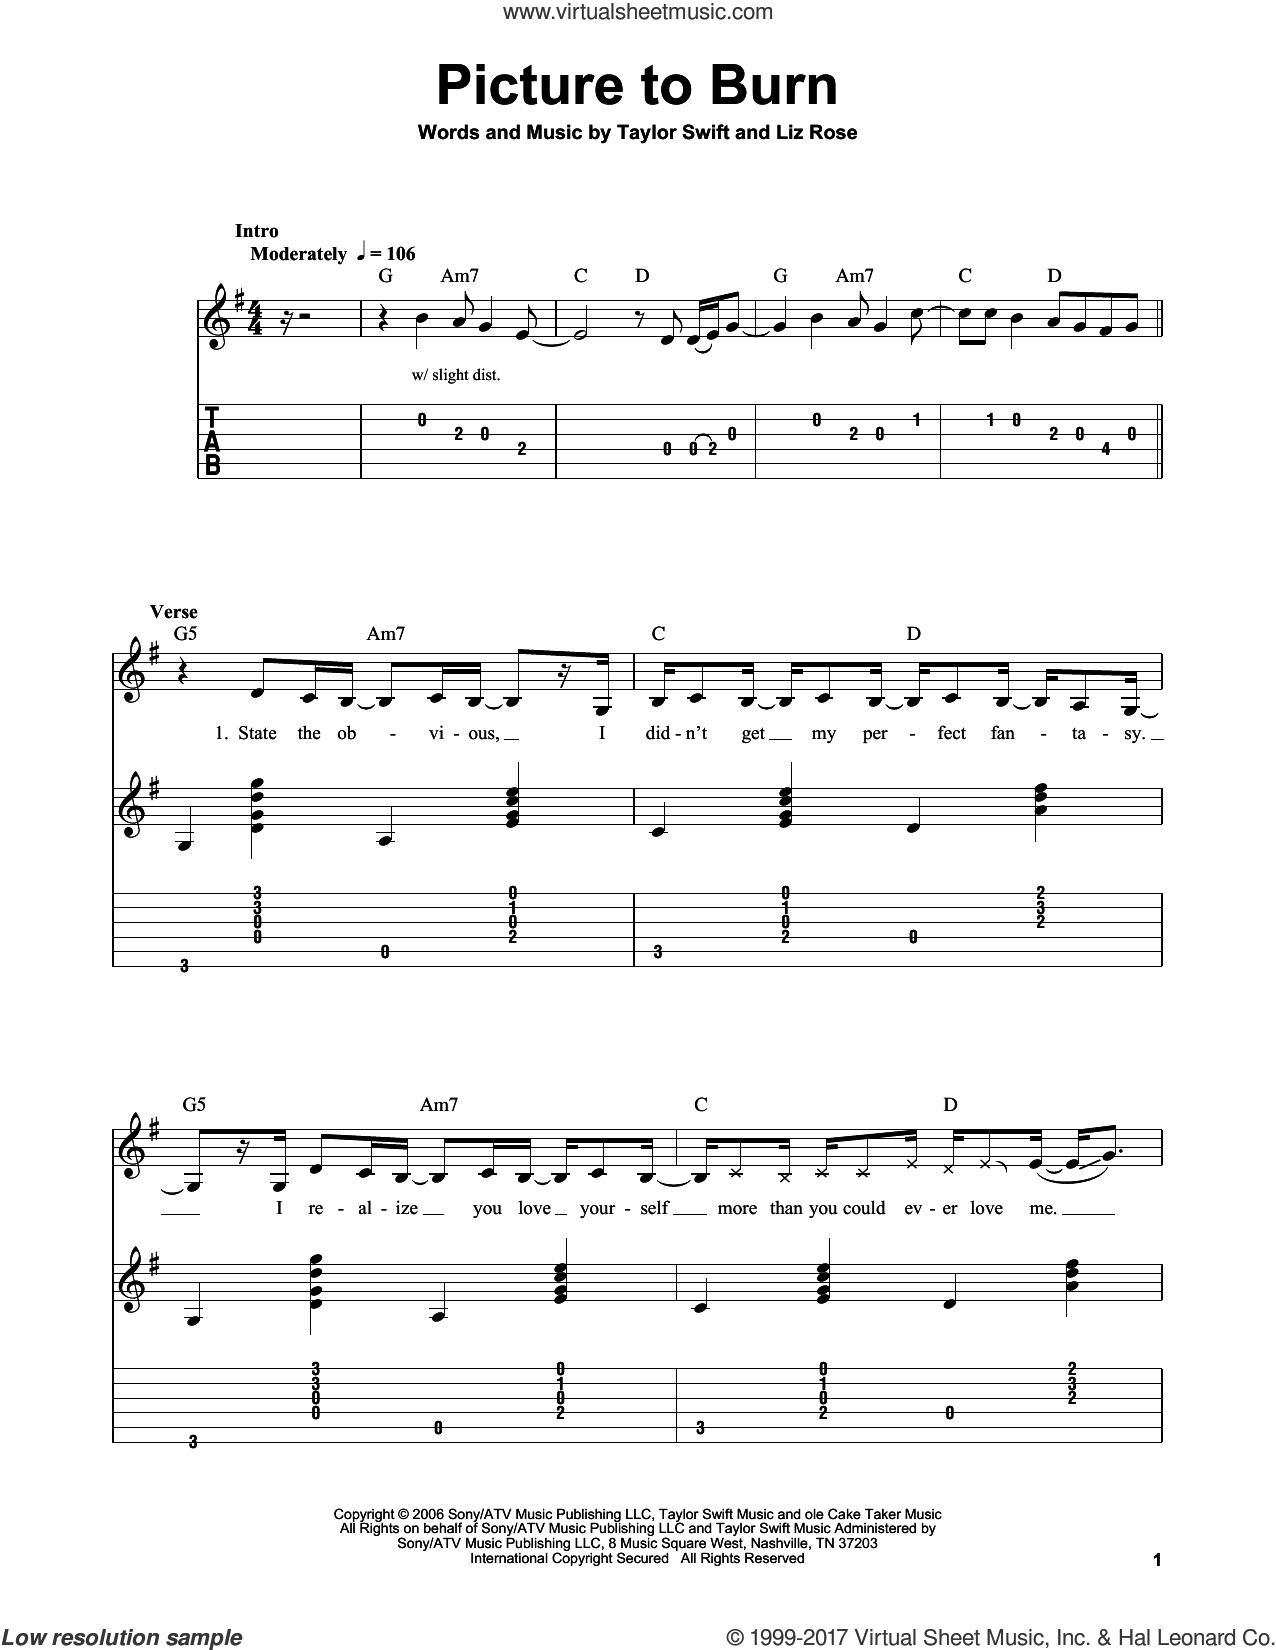 Swift - Picture To Burn Sheet Music For Guitar Solo (Easy Tablature) - Taylor Swift Mine Piano Sheet Music Free Printable